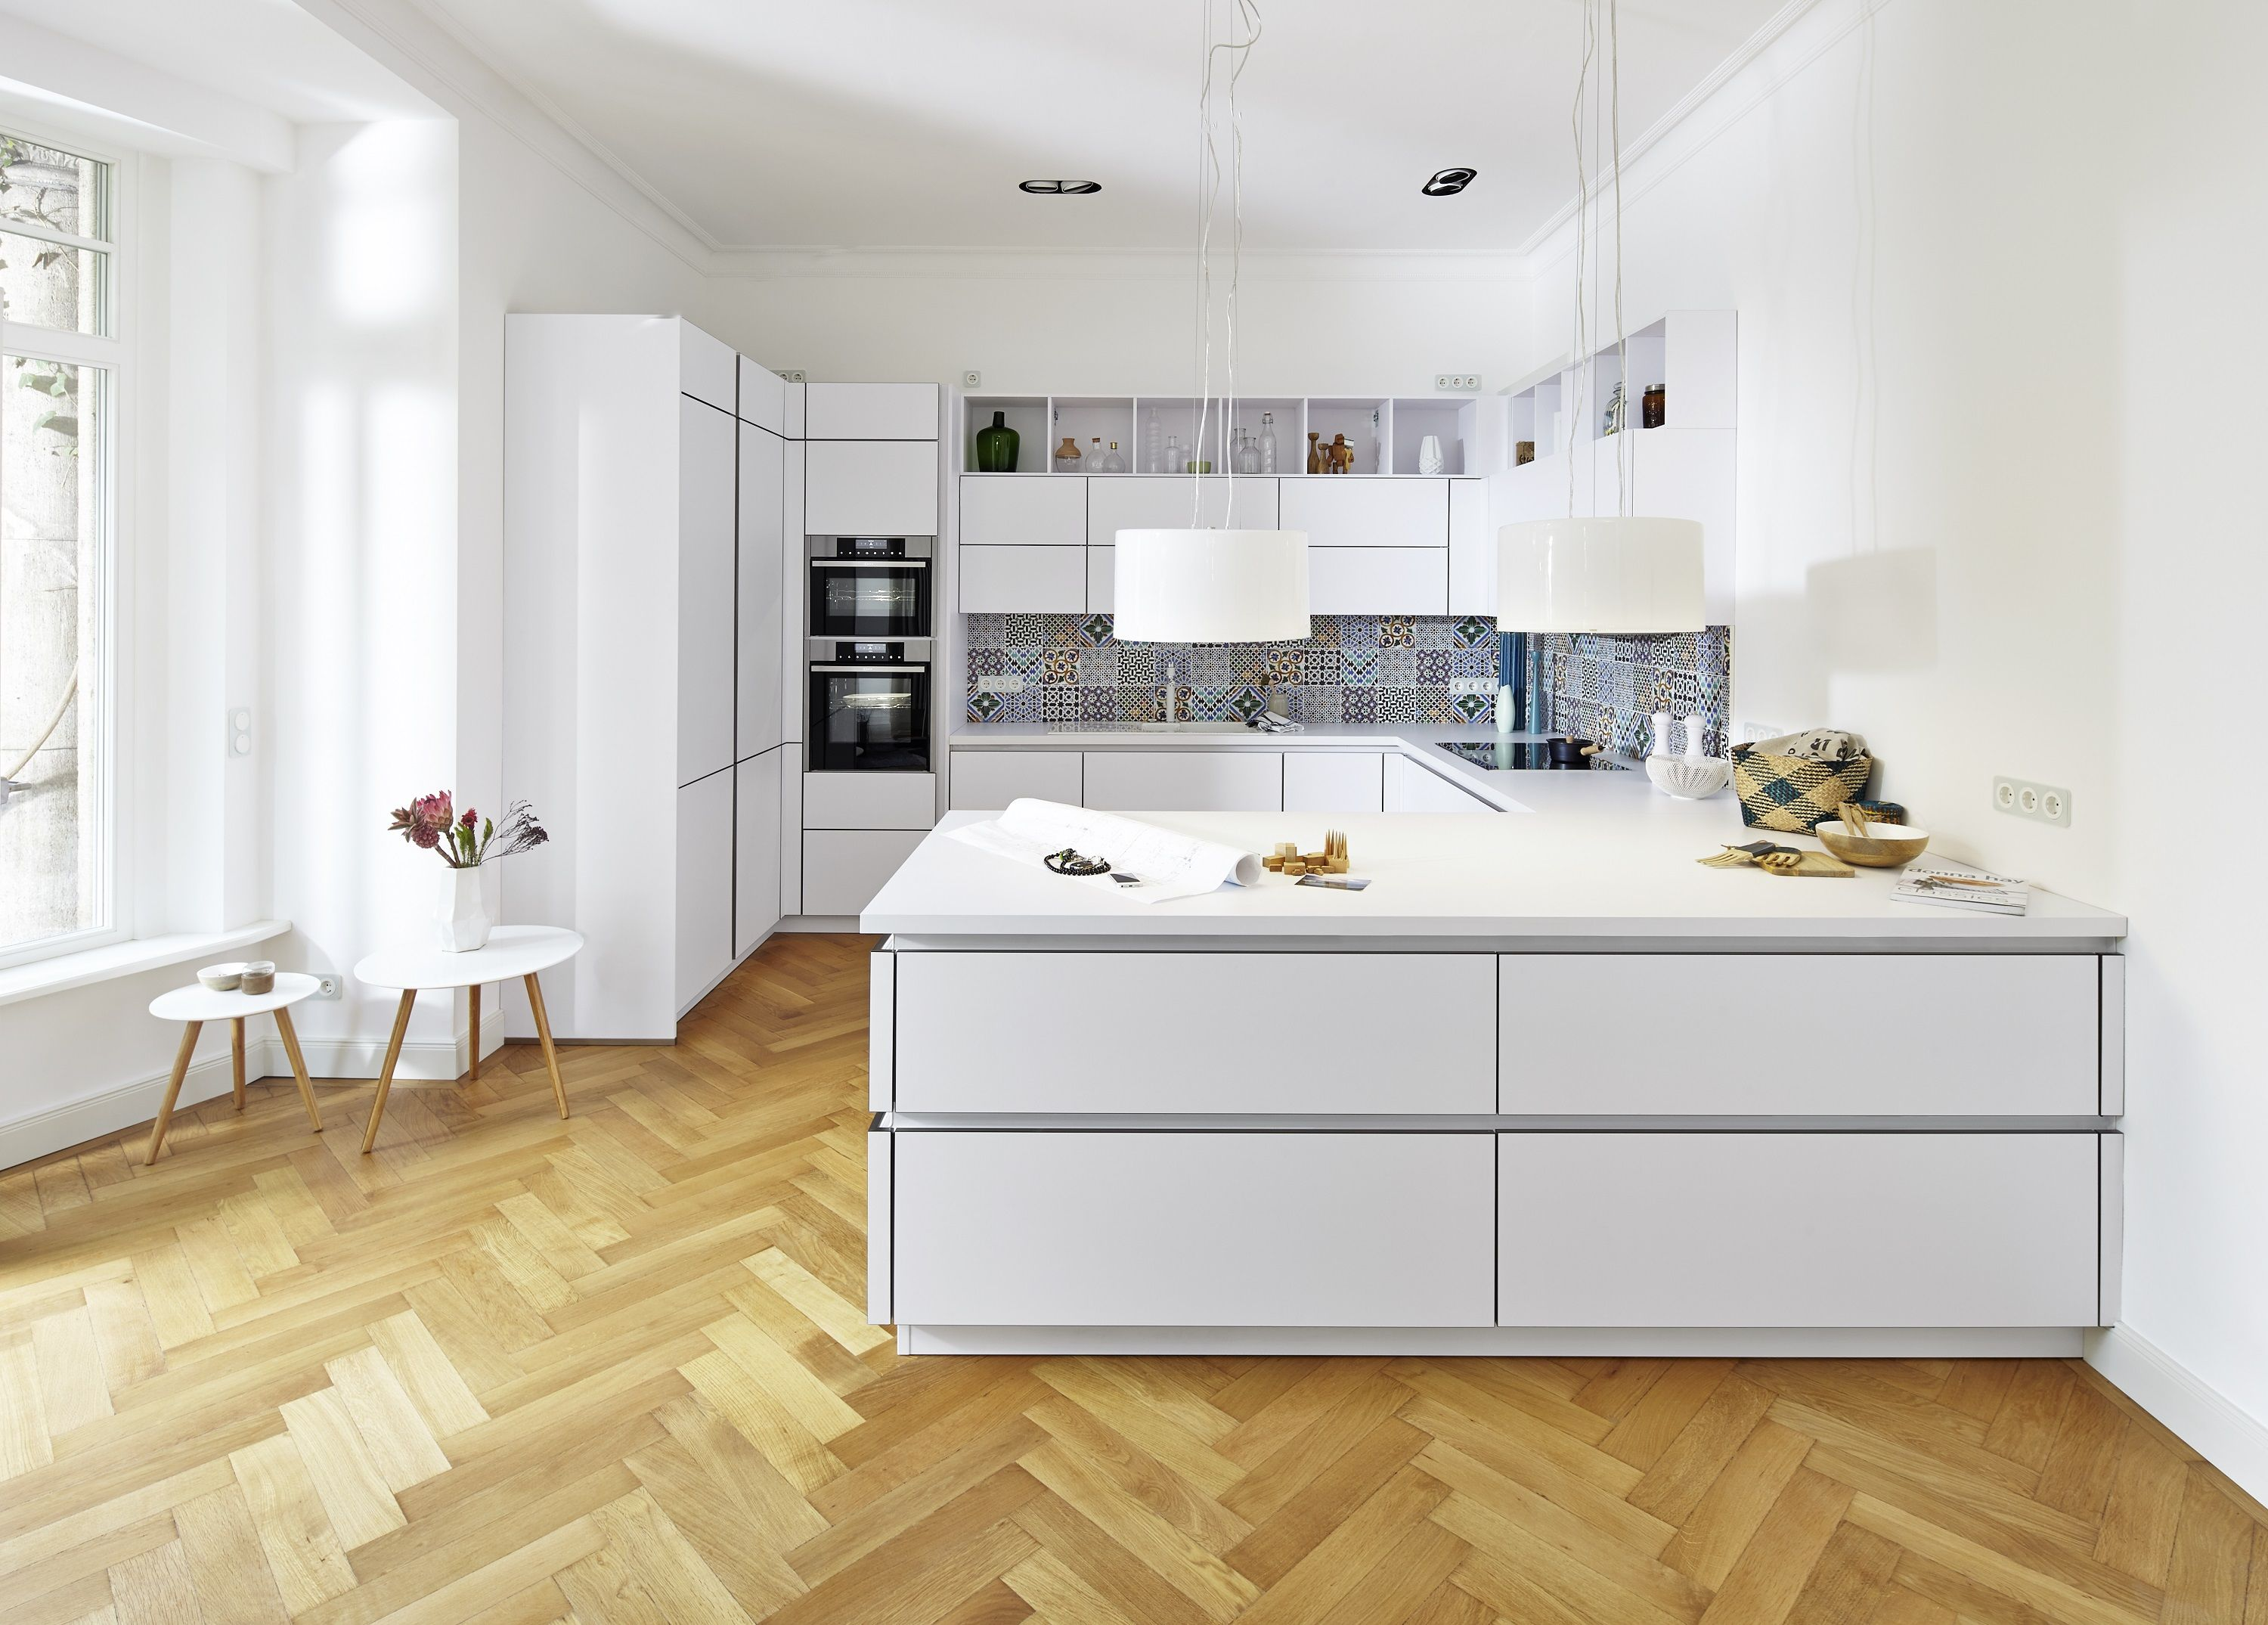 Küche Bauformat Cube German Kitchen We Will Be Displaying With Bauformat At The